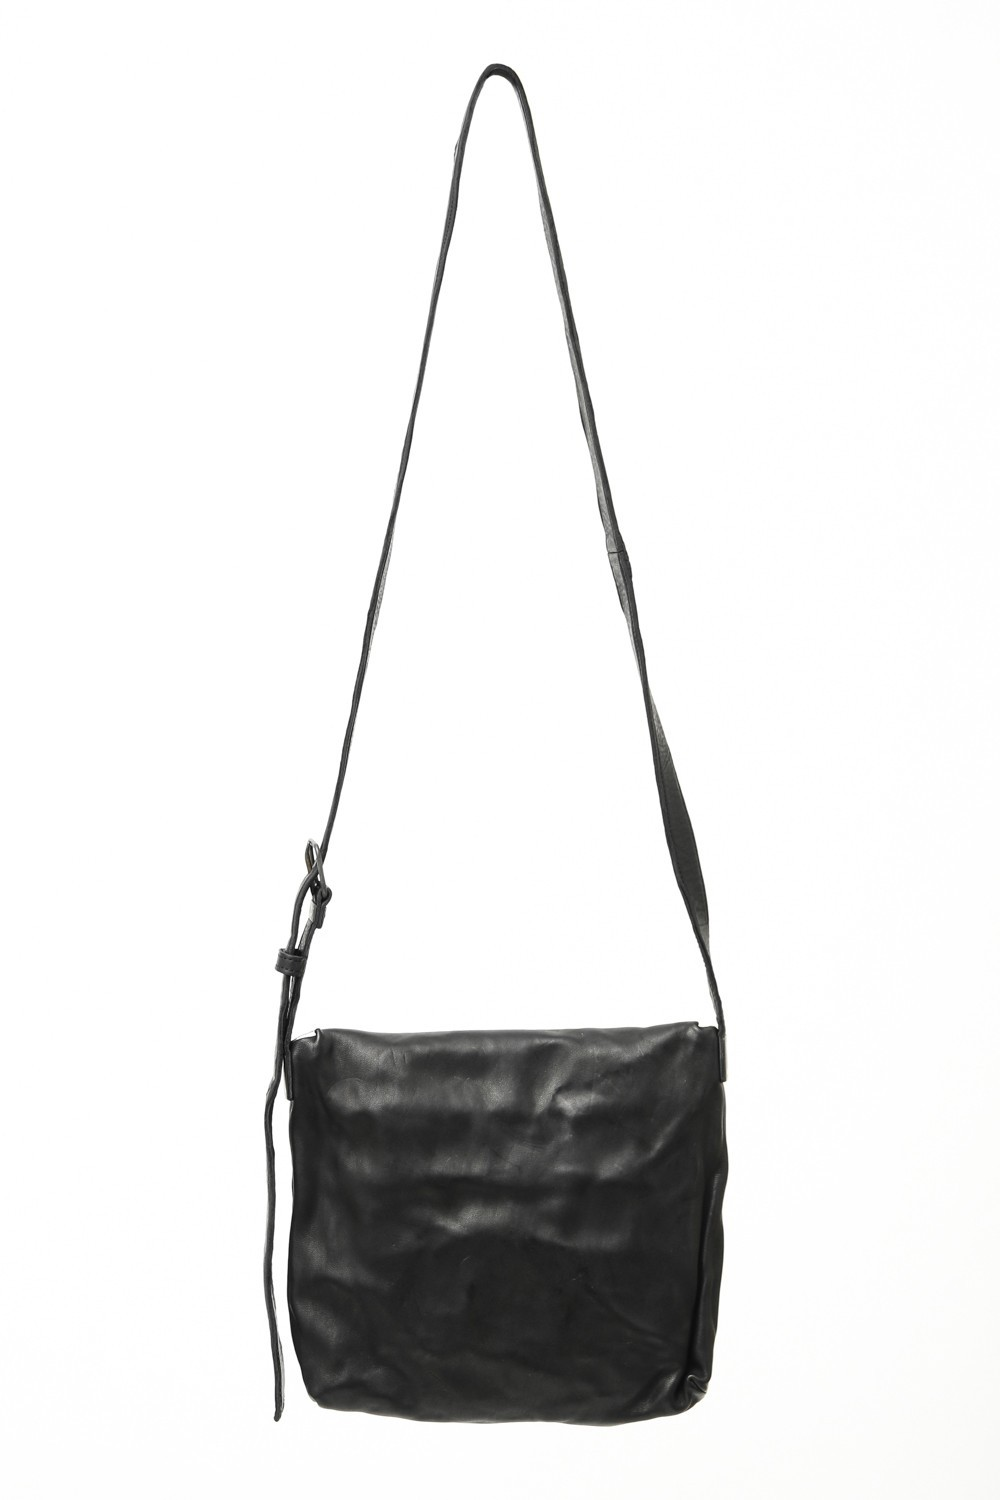 Japanese Horse Leather Shoulder Bag